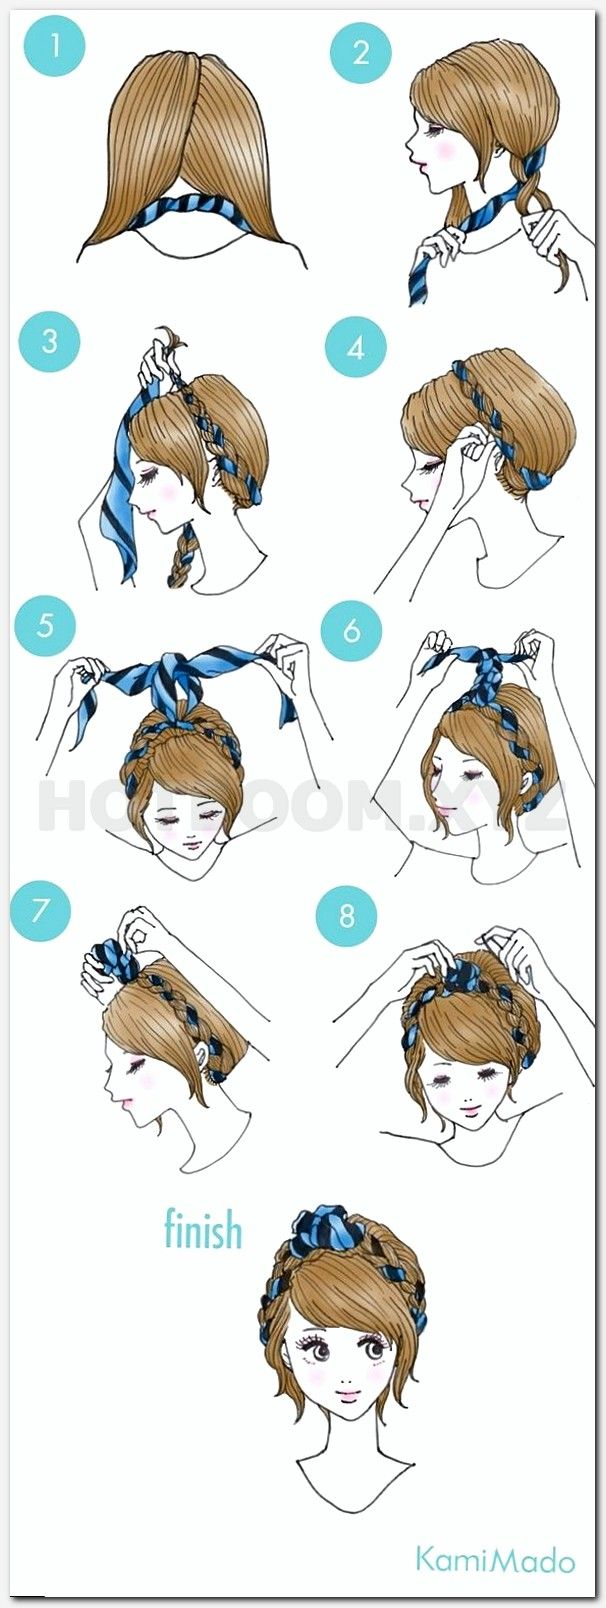 ladies modern hairstyles, which hairstyle for round face, hair stylist nearby, the new haircut, child hairstyle 2017, hairstyles fine wavy hair, short curly hairstyles for african american women, short hair set, black styles for natural hair, hairstyle for round face girl, pics of shoulder length haircuts, ponytail hairstyles for little girl, beautiful bob hairstyles, 2017 new haircuts for women, fast hairstyles for long hair, short hairstyles for coarse frizzy hair